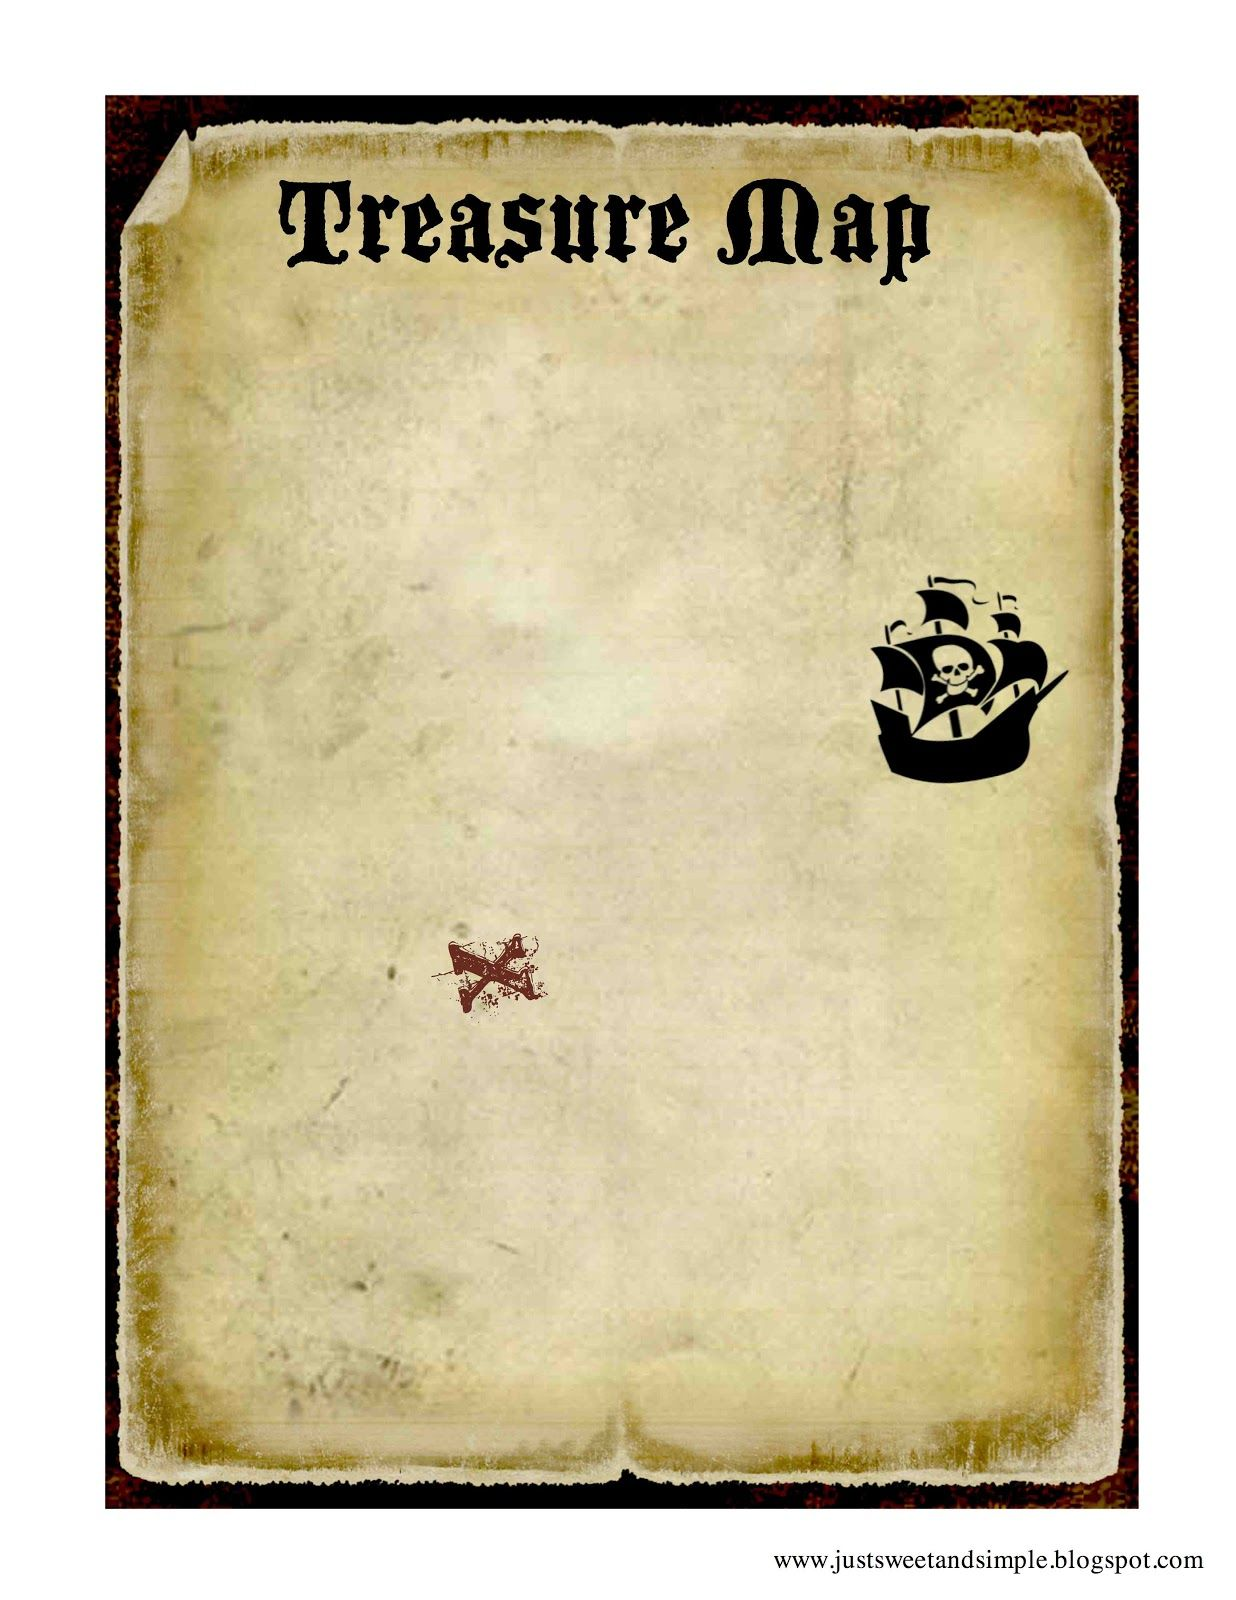 Adult pirate party ideas - As I Discussed In The Pirate Party Invitation Post The Adult Pirate Party Post